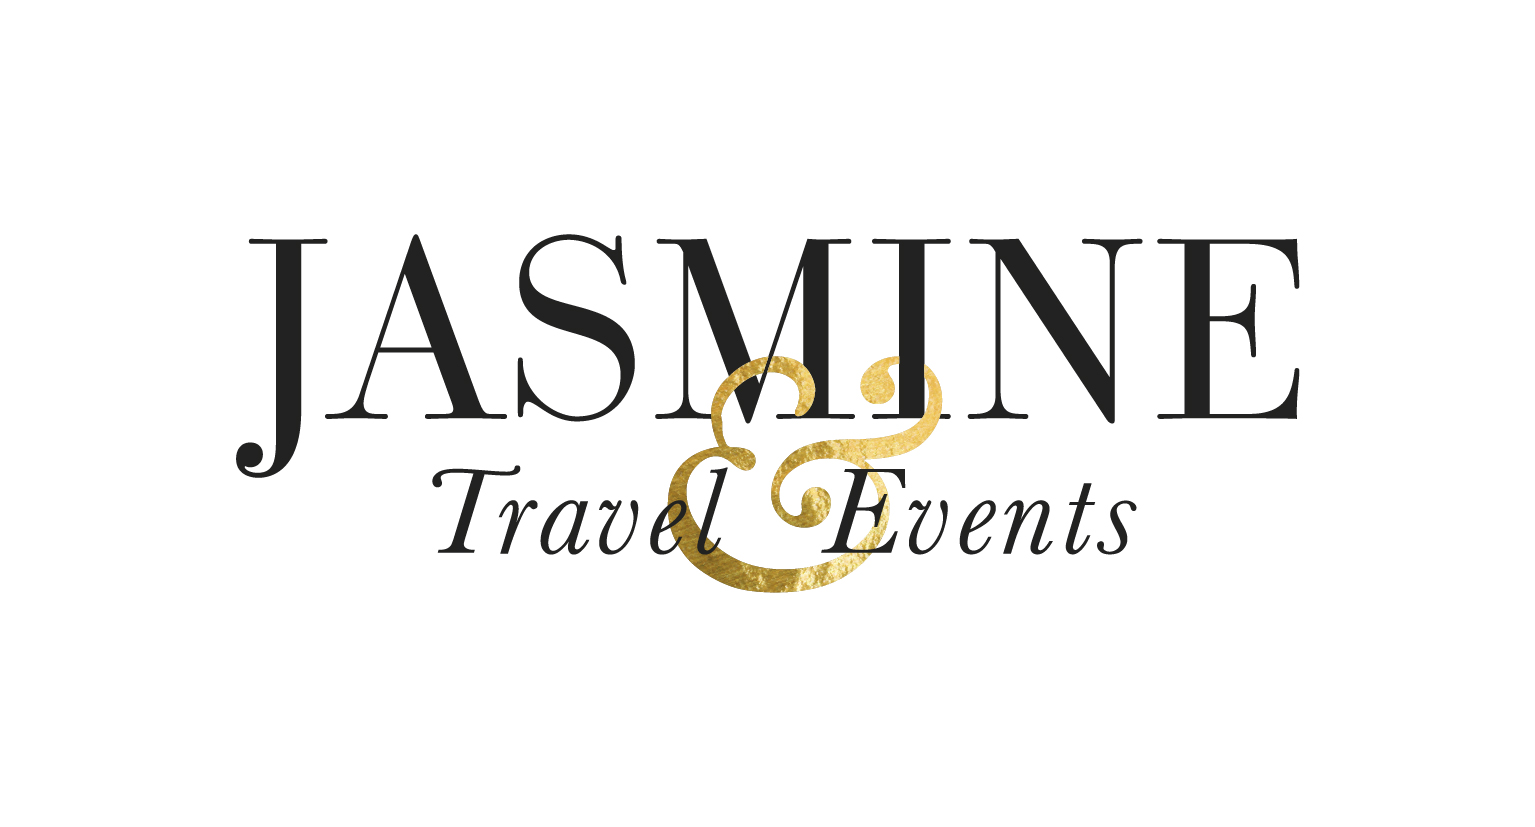 Jasmine Travel & Events